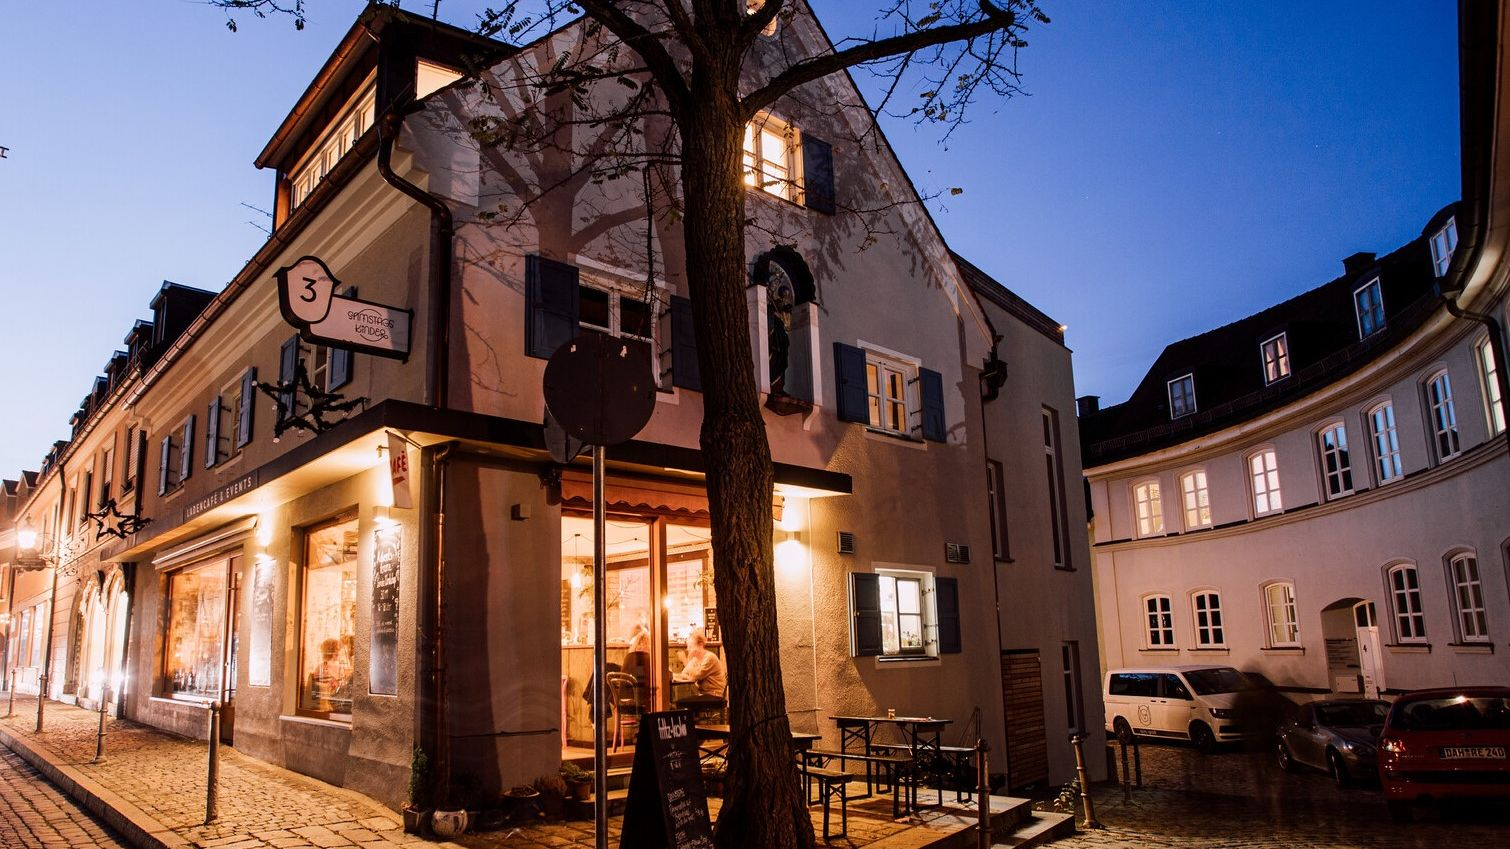 A café in the old town of Dachau, illuminated at the blue hour